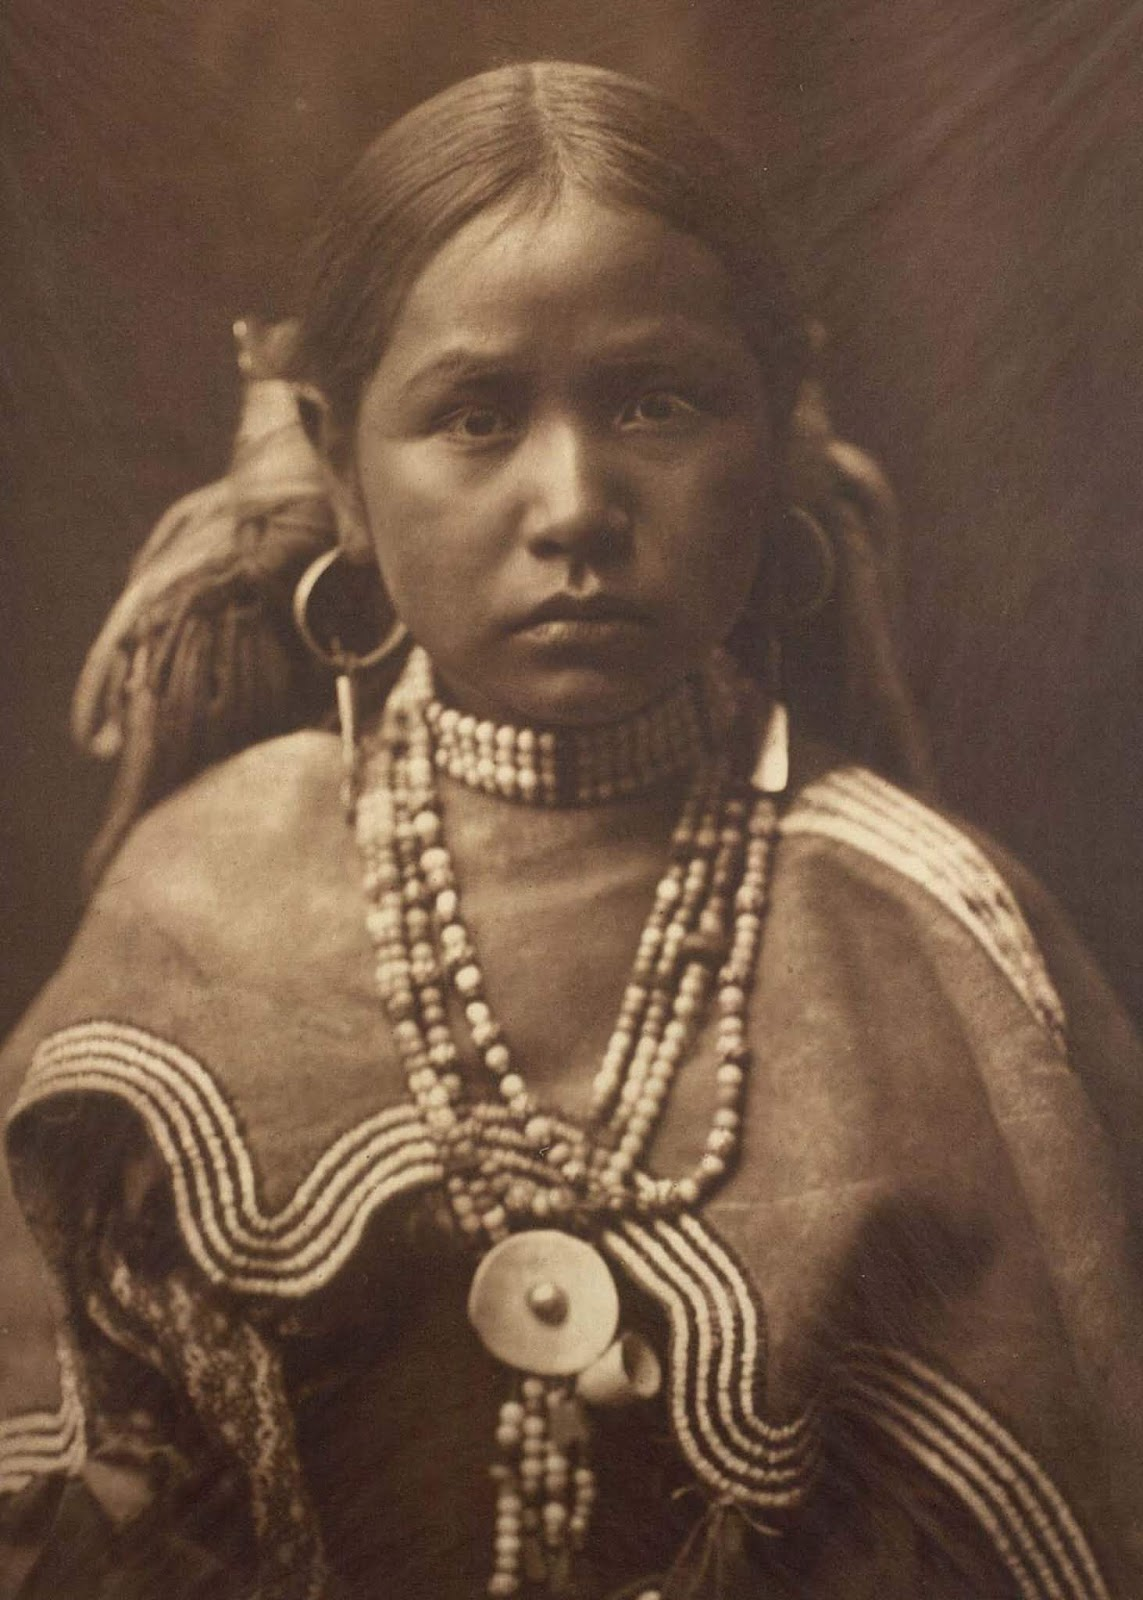 A Jicarrilla girl. 1910.